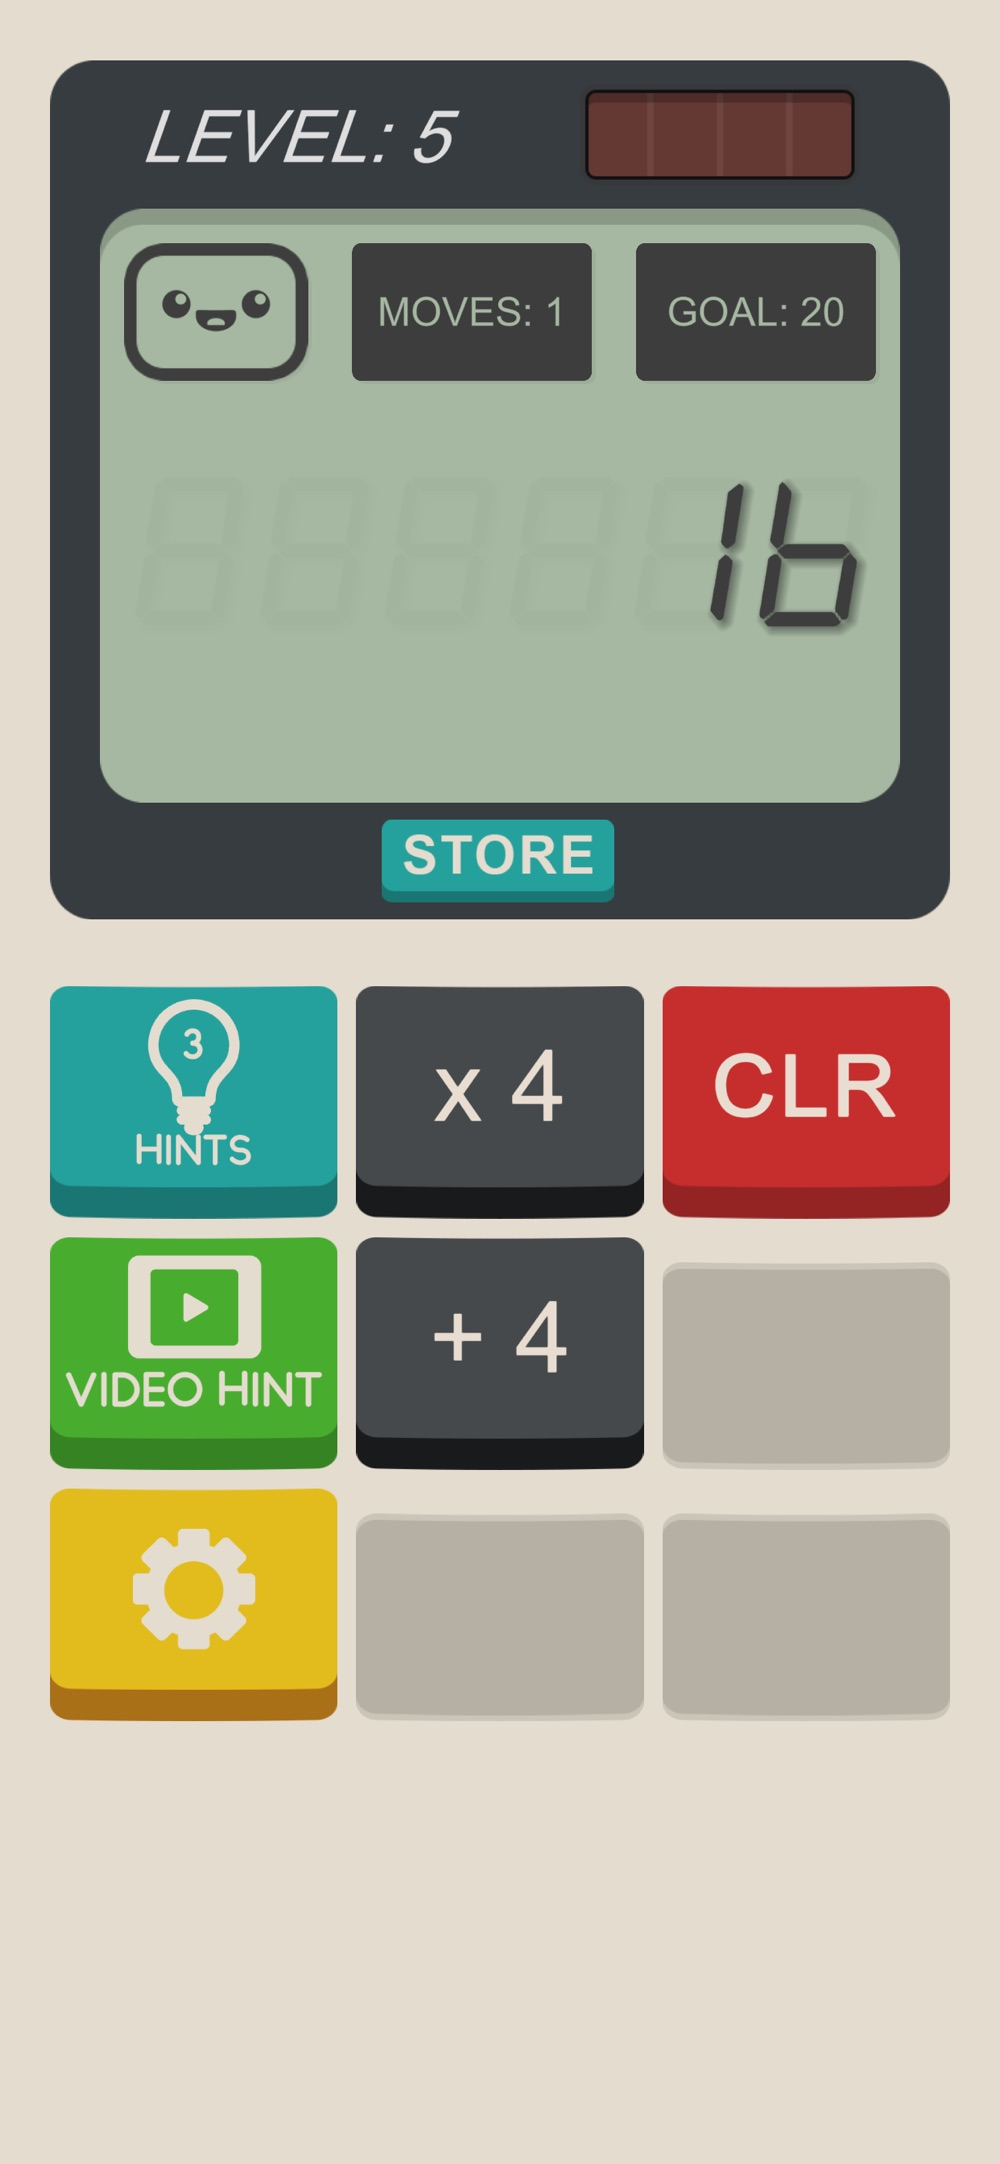 Calculator: The Game Cheat Codes